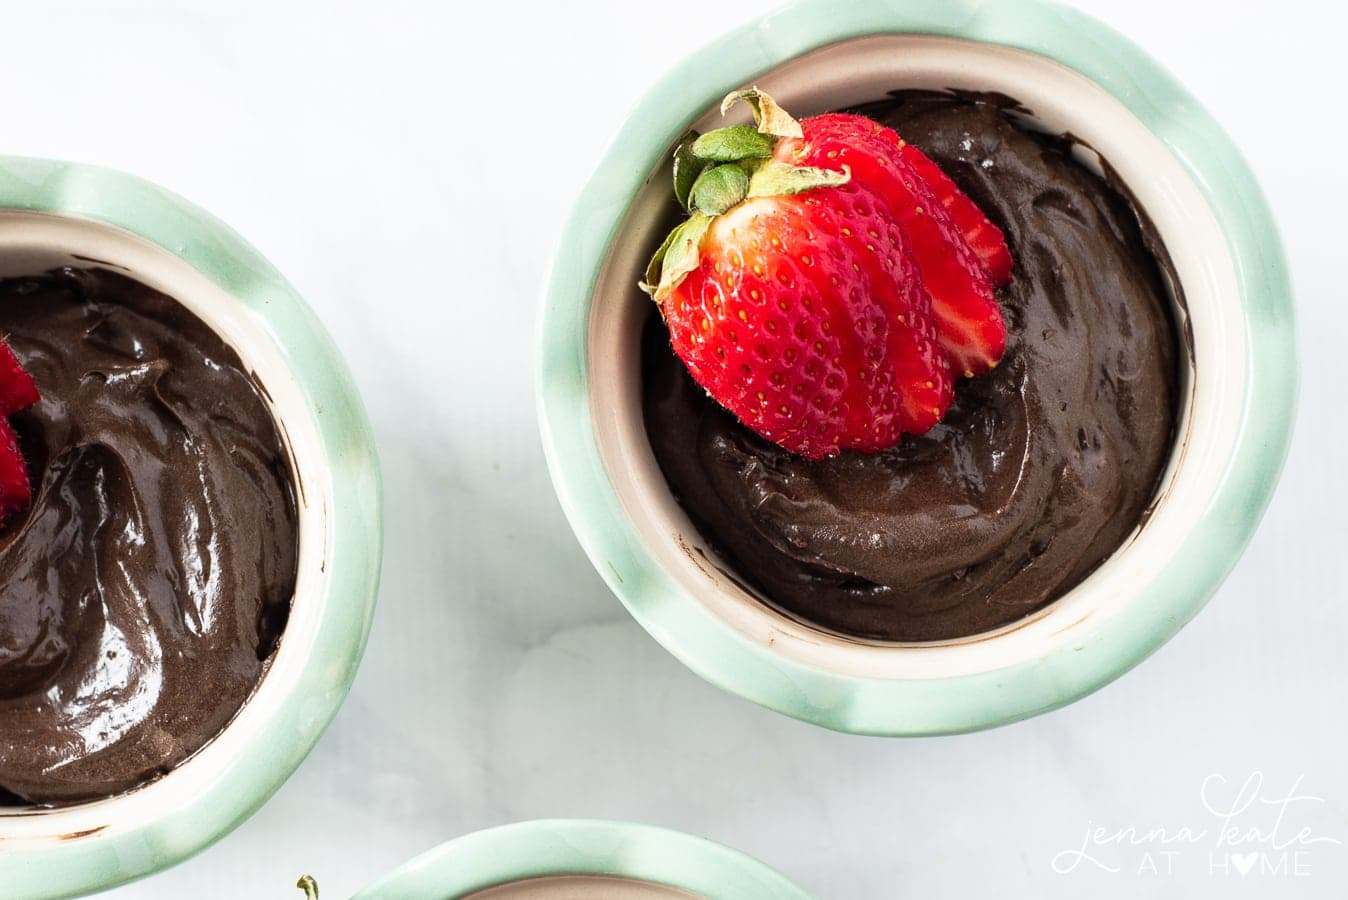 A delicious chocolate avocado pudding that can be made vegan or paleo